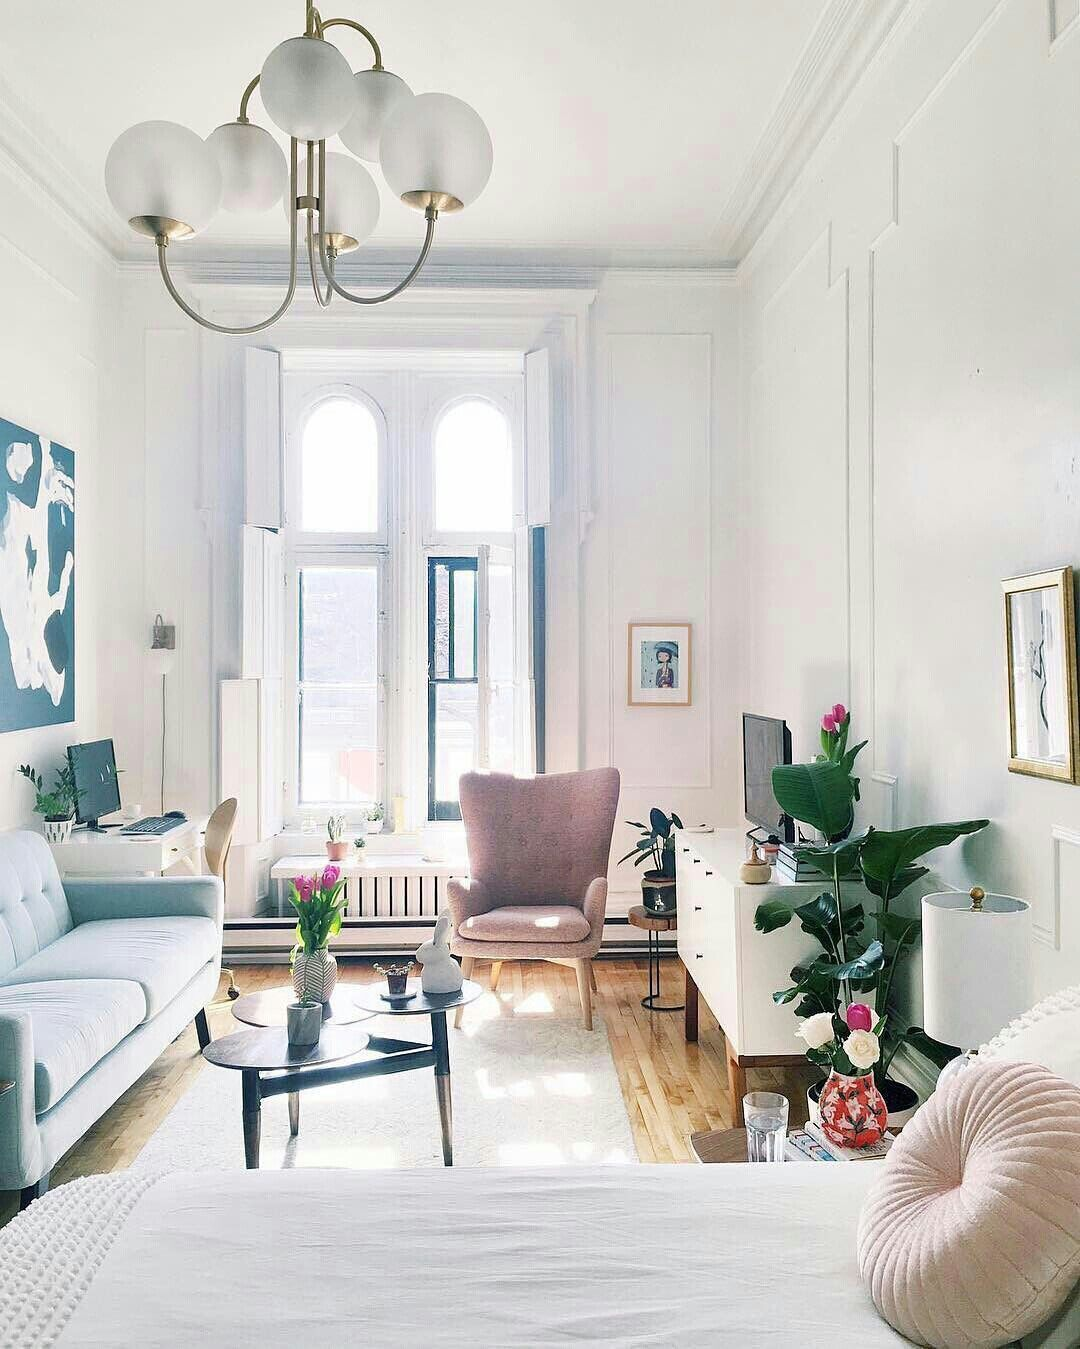 Find Studio Apartment: How To Make The Most Out Of A Studio Apartment